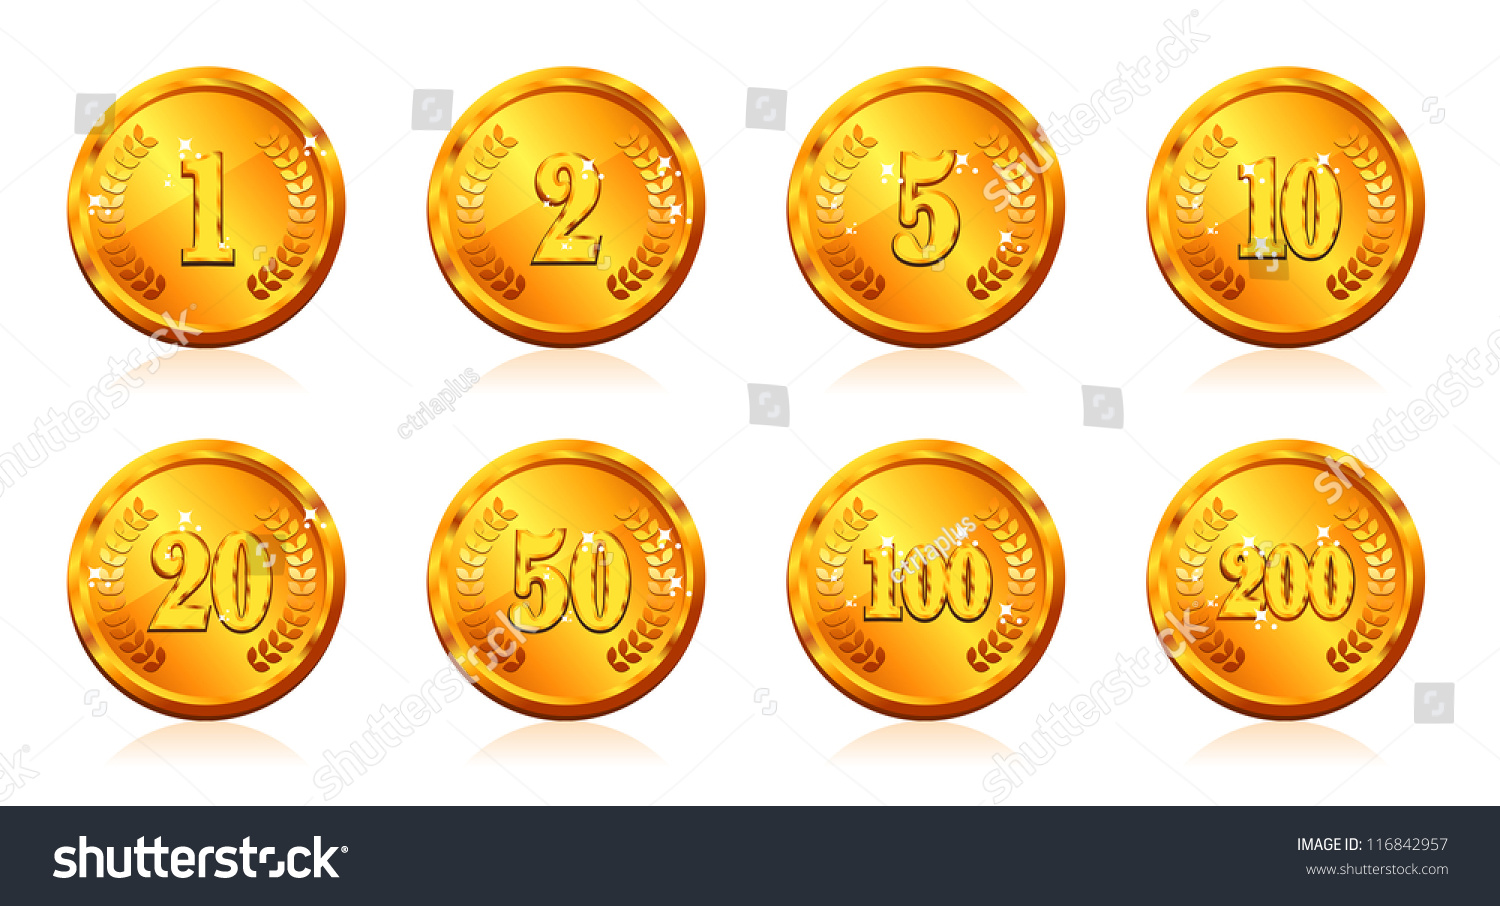 Gold coins many price vector stock vector 116842957 shutterstock gold coins with many price in vector buycottarizona